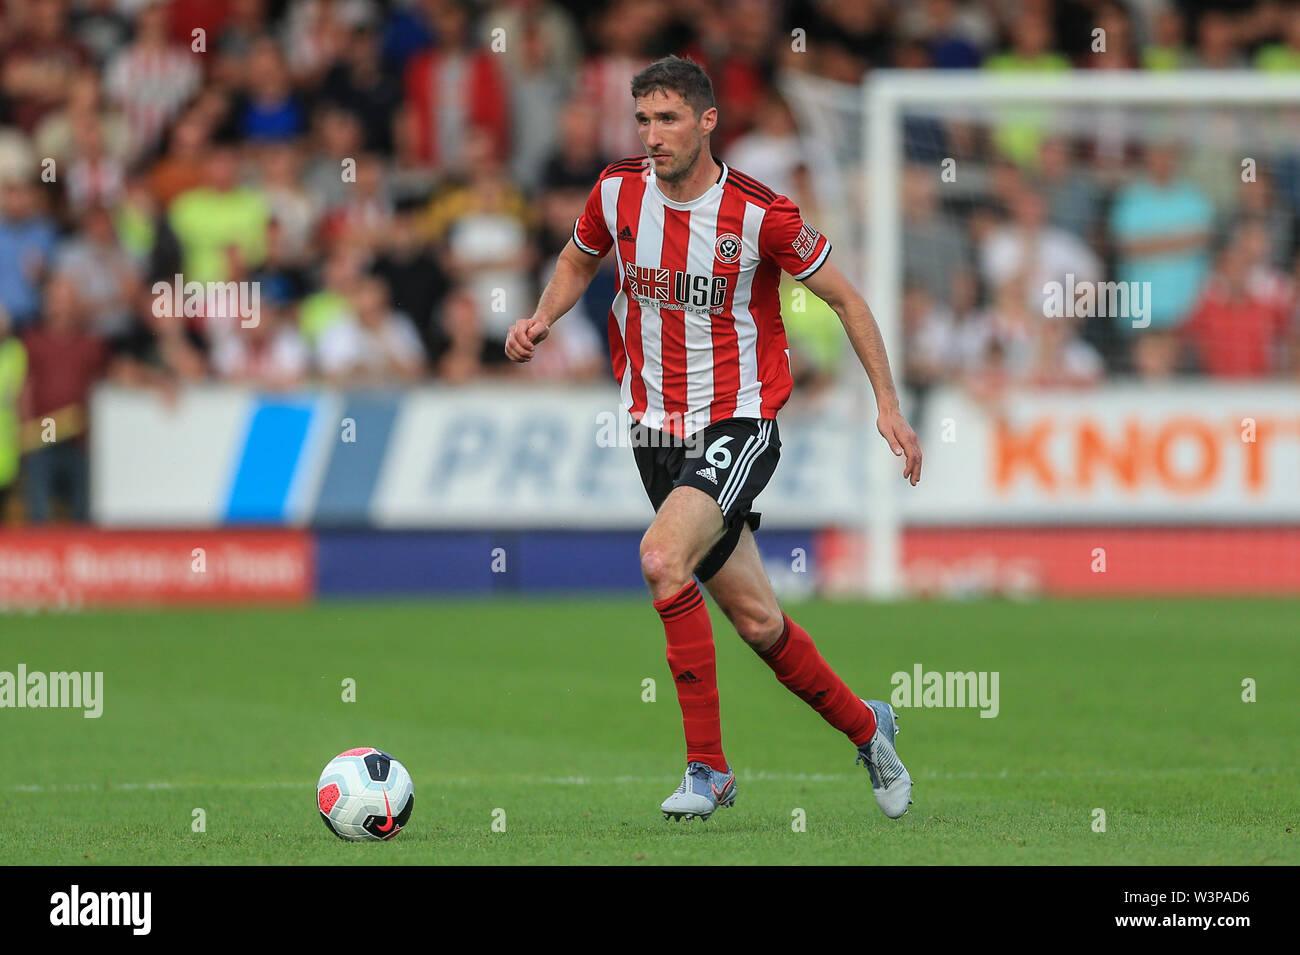 16th July 2019, Pirelli Stadium, Burton upon Trent, England; Pre-Season friendly, Burton Albion vs Sheffield United : Chris Basham of Sheffield United during the game Credit: Mark Cosgrove/News Images  English Football League images are subject to DataCo Licence - Stock Image